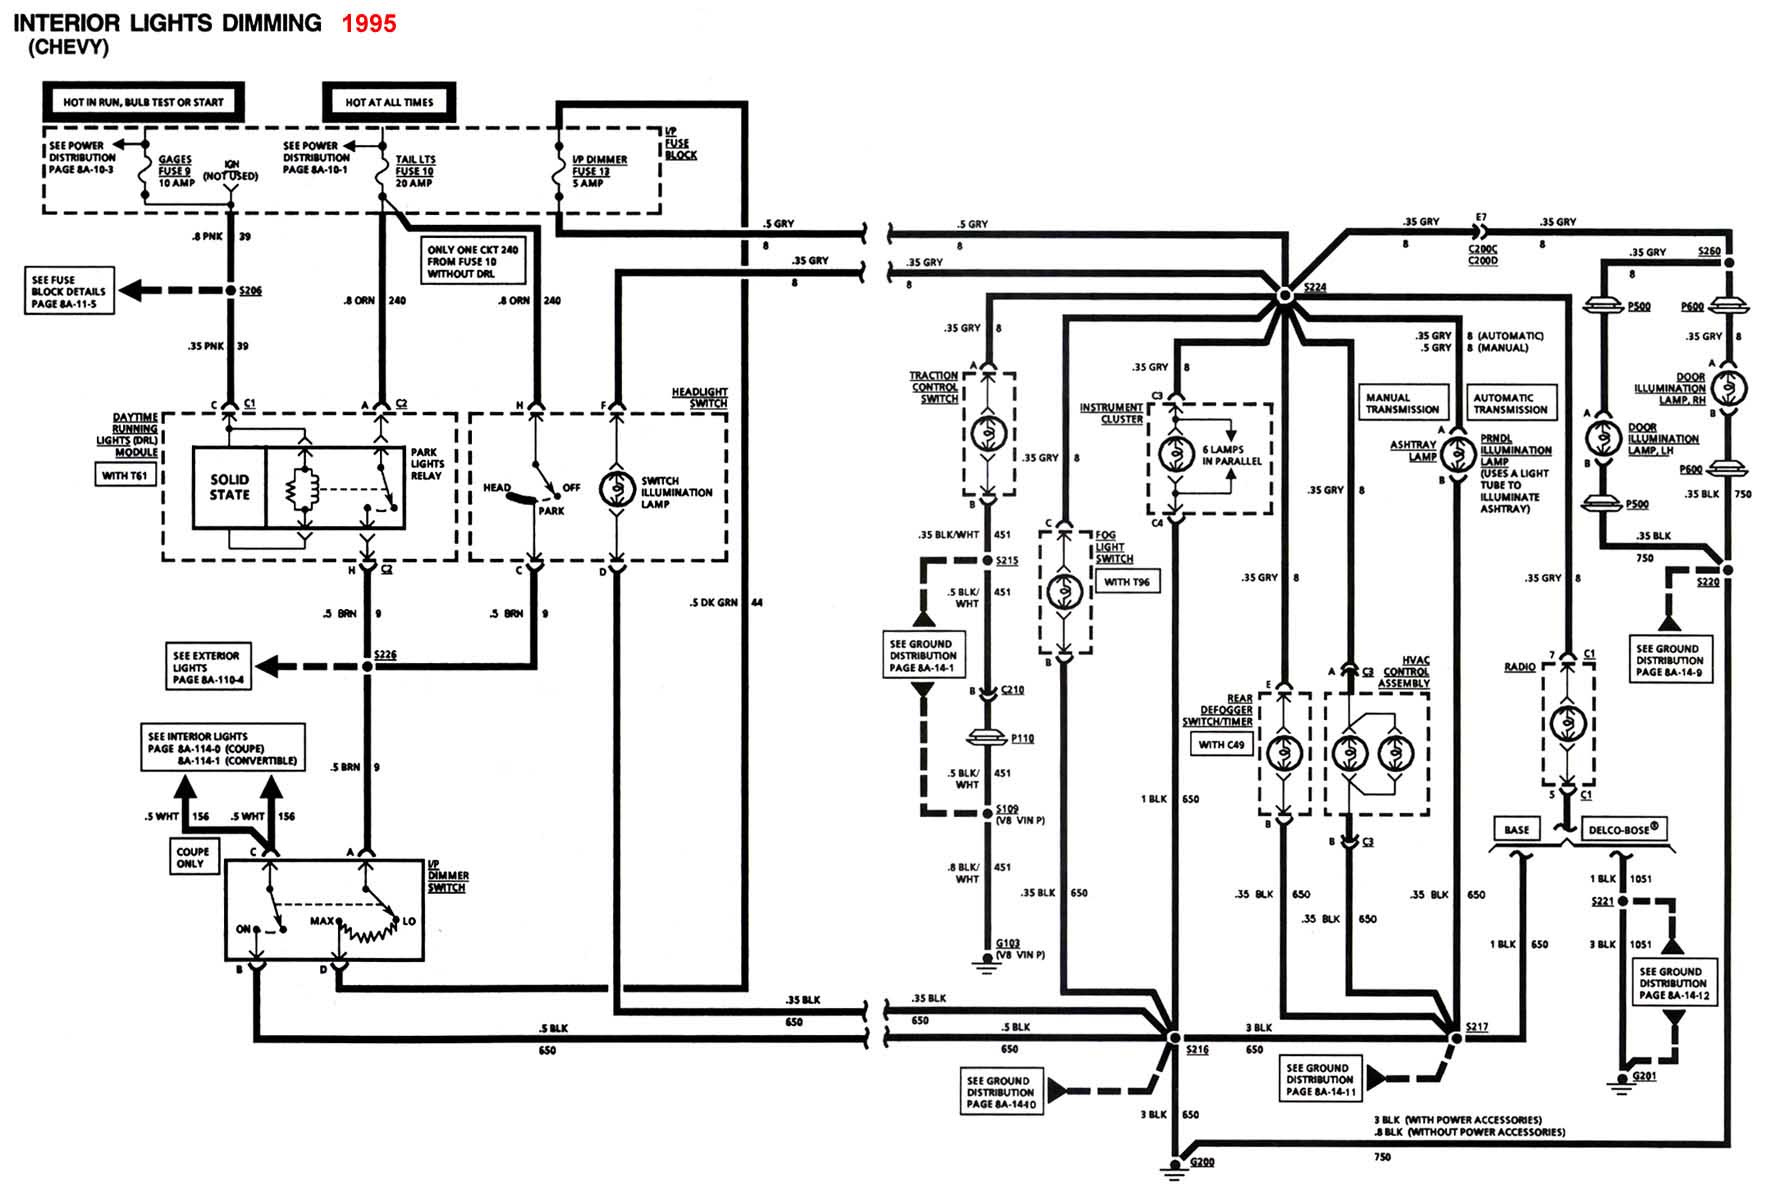 hight resolution of interior wiring diagram wiring diagram schematics internal wiring diagram for starter generator 4th gen lt1 f